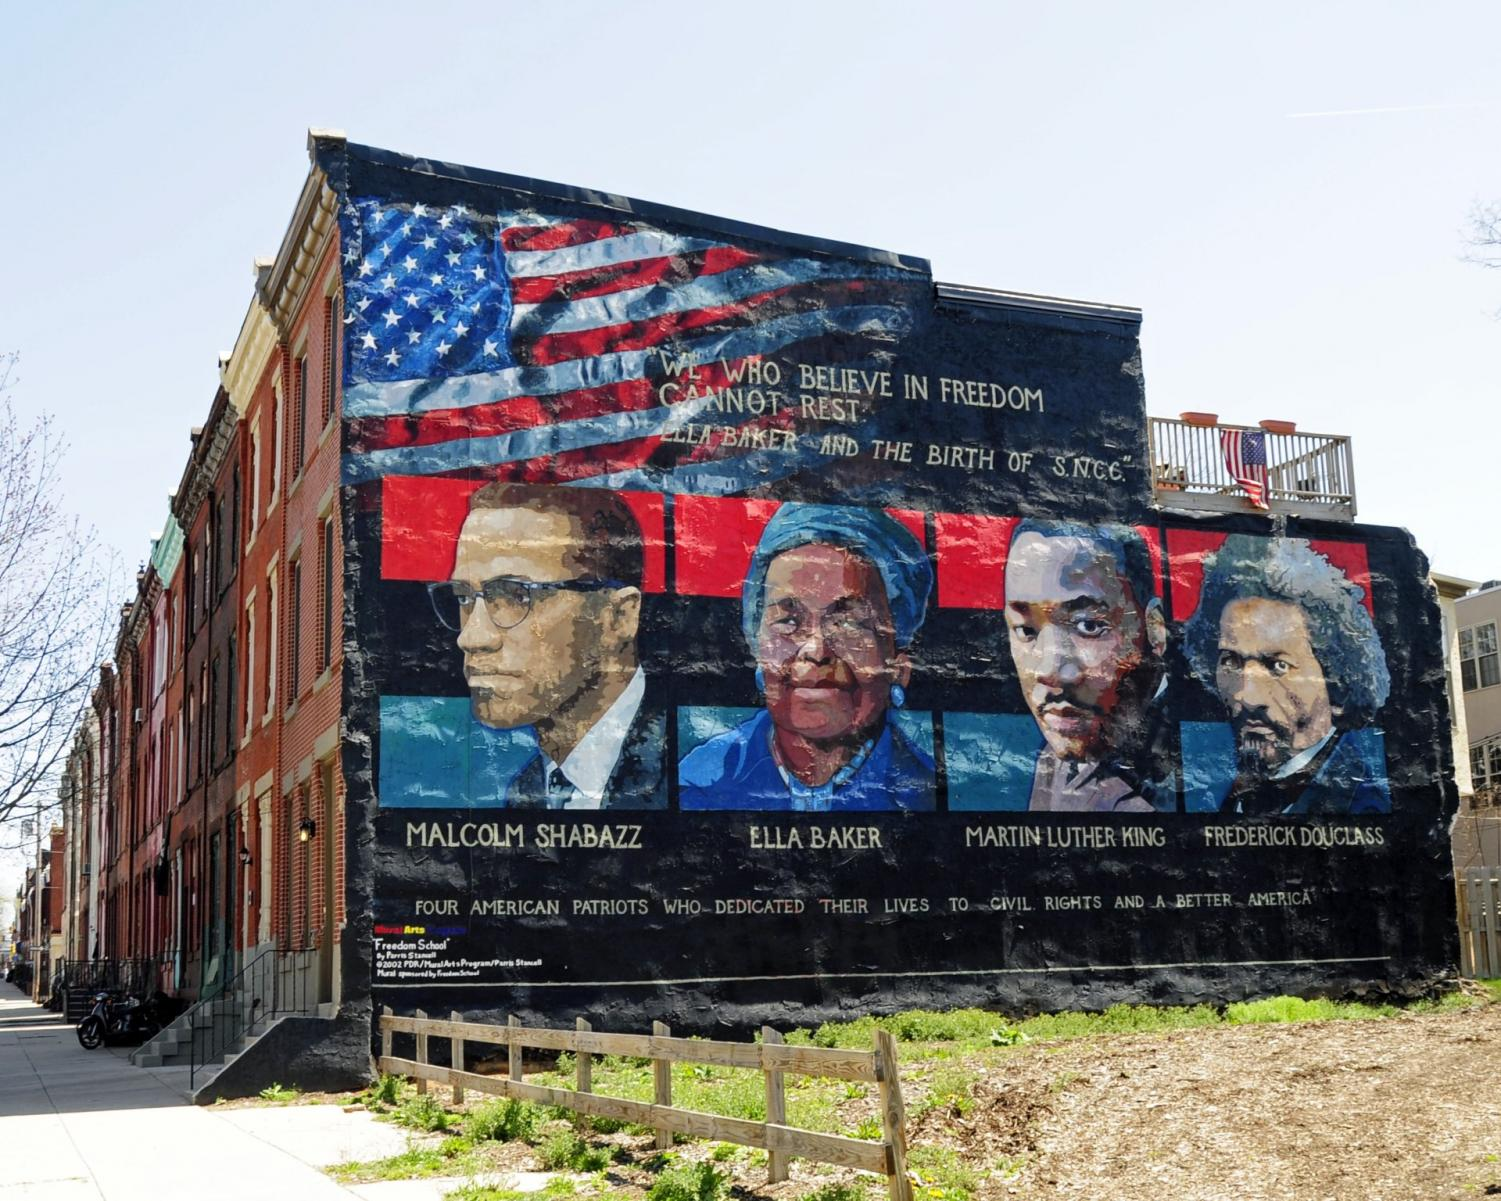 This is a mural on the wall of people including American Activist, Ella Baker.